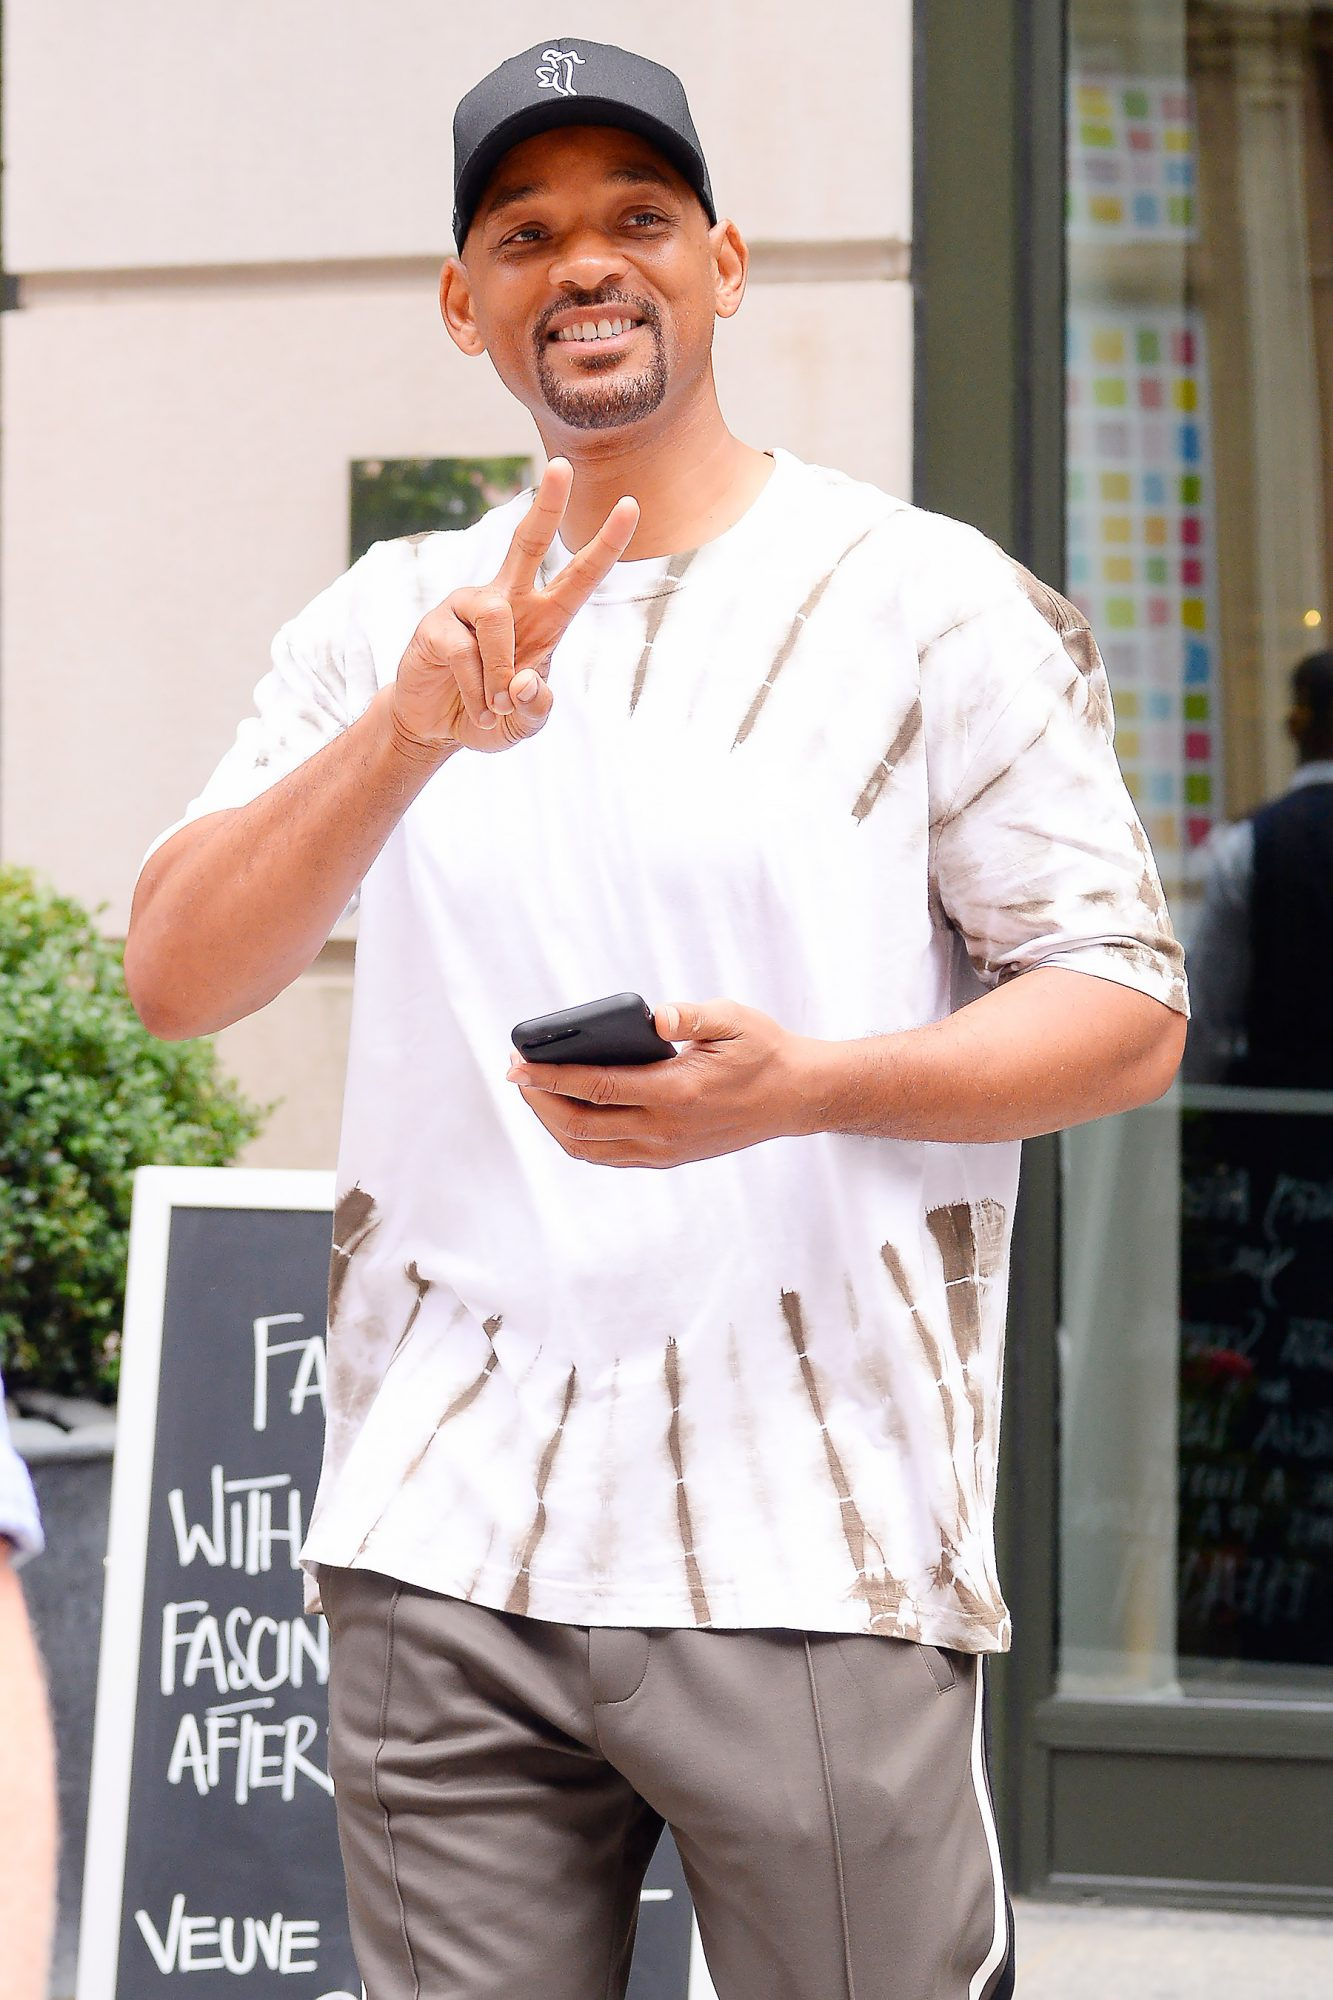 Will Smith gives the peace sign to photographers outside his hotel in New York City